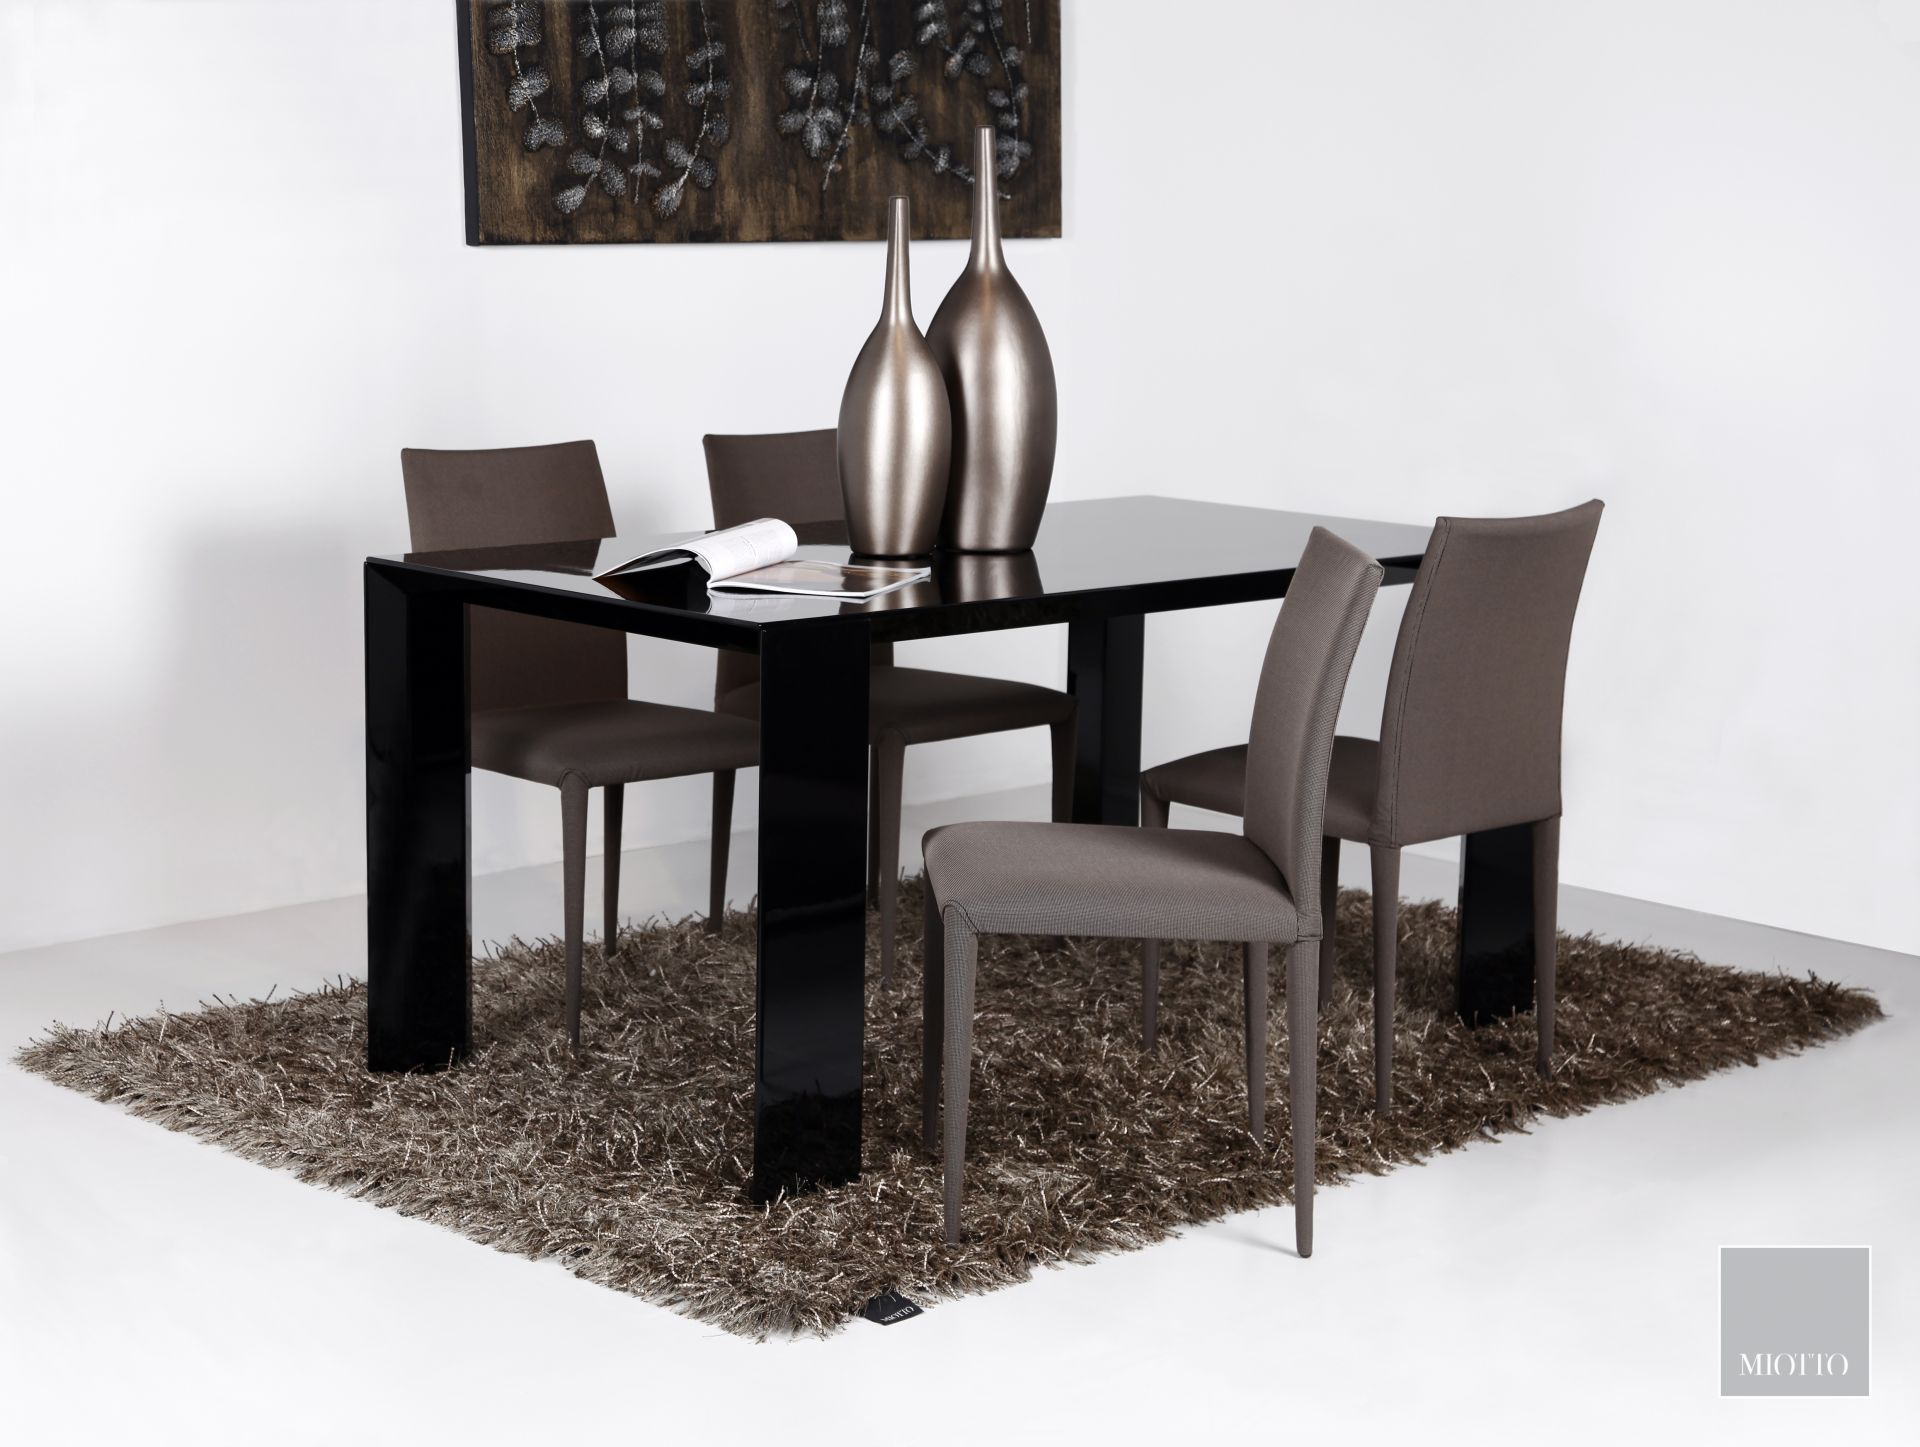 miotto_soriano dining table_0160_web